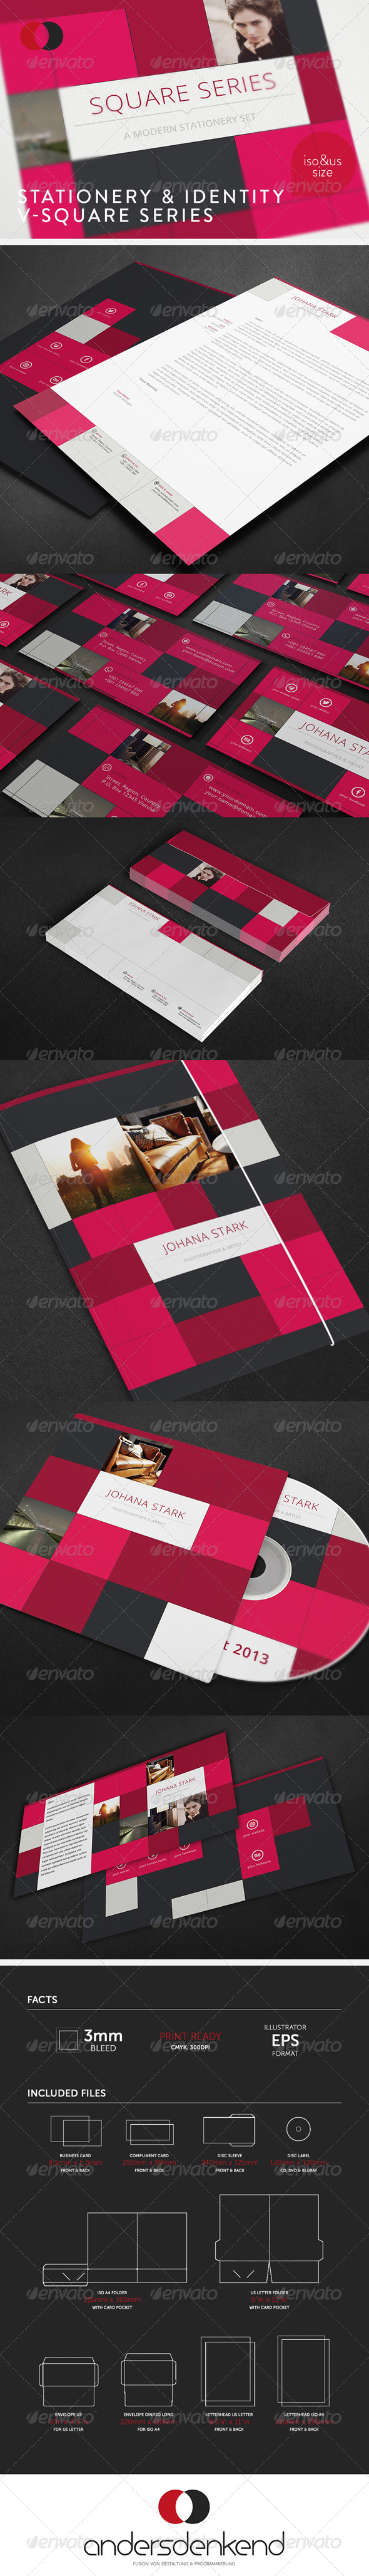 GraphicRiver Stationery & Identity V-Square Series 5946419